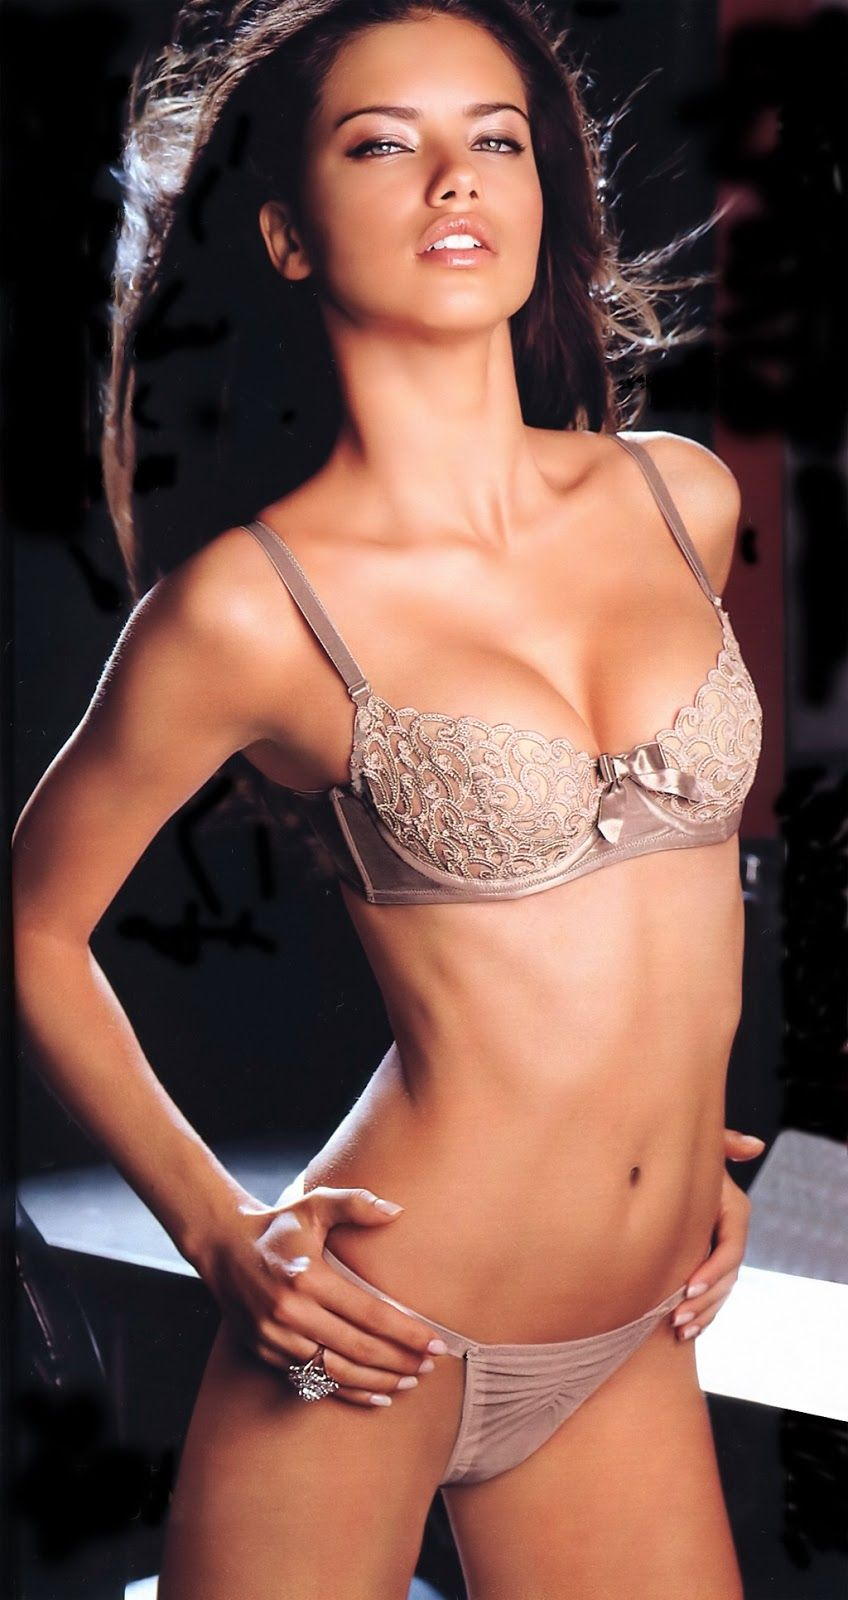 e4876c3924727 Adriana lima 8x10 photo picture pic hot sexy body in bra and panties 35